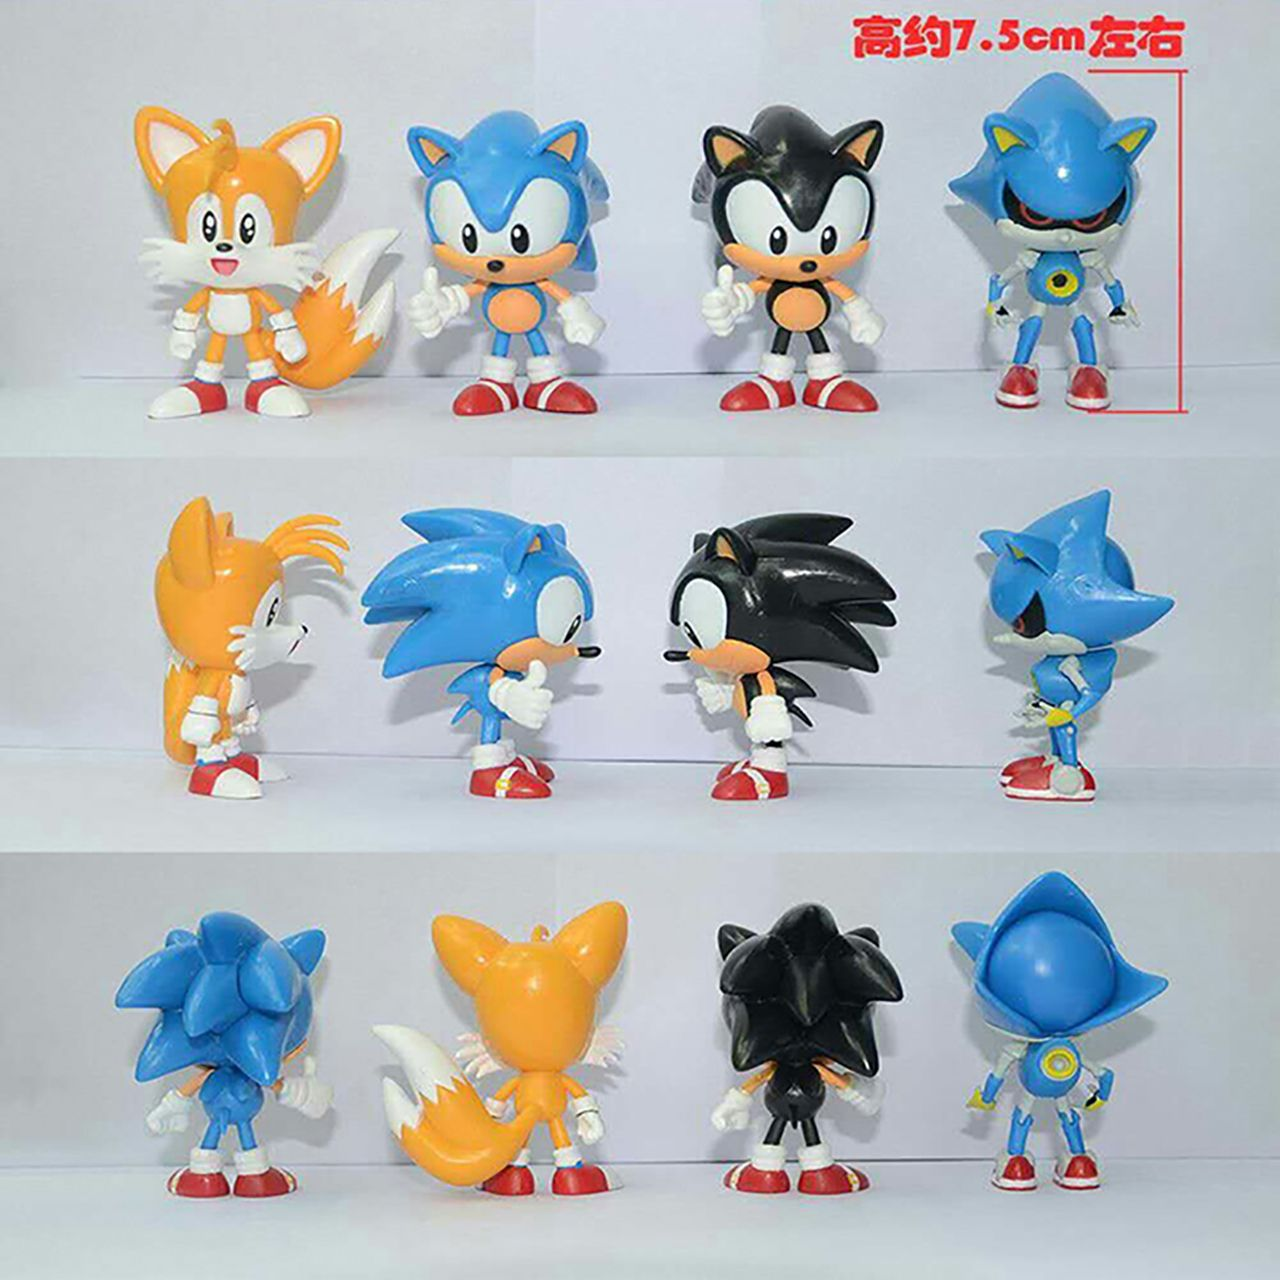 4pcs Set Sonic The Hedgehog Action Figures 1 12 Scale Painted Sally Tails Antoine Doll Pvc Action Figu Action Figures Toys Sonic Figures Sonic Birthday Parties